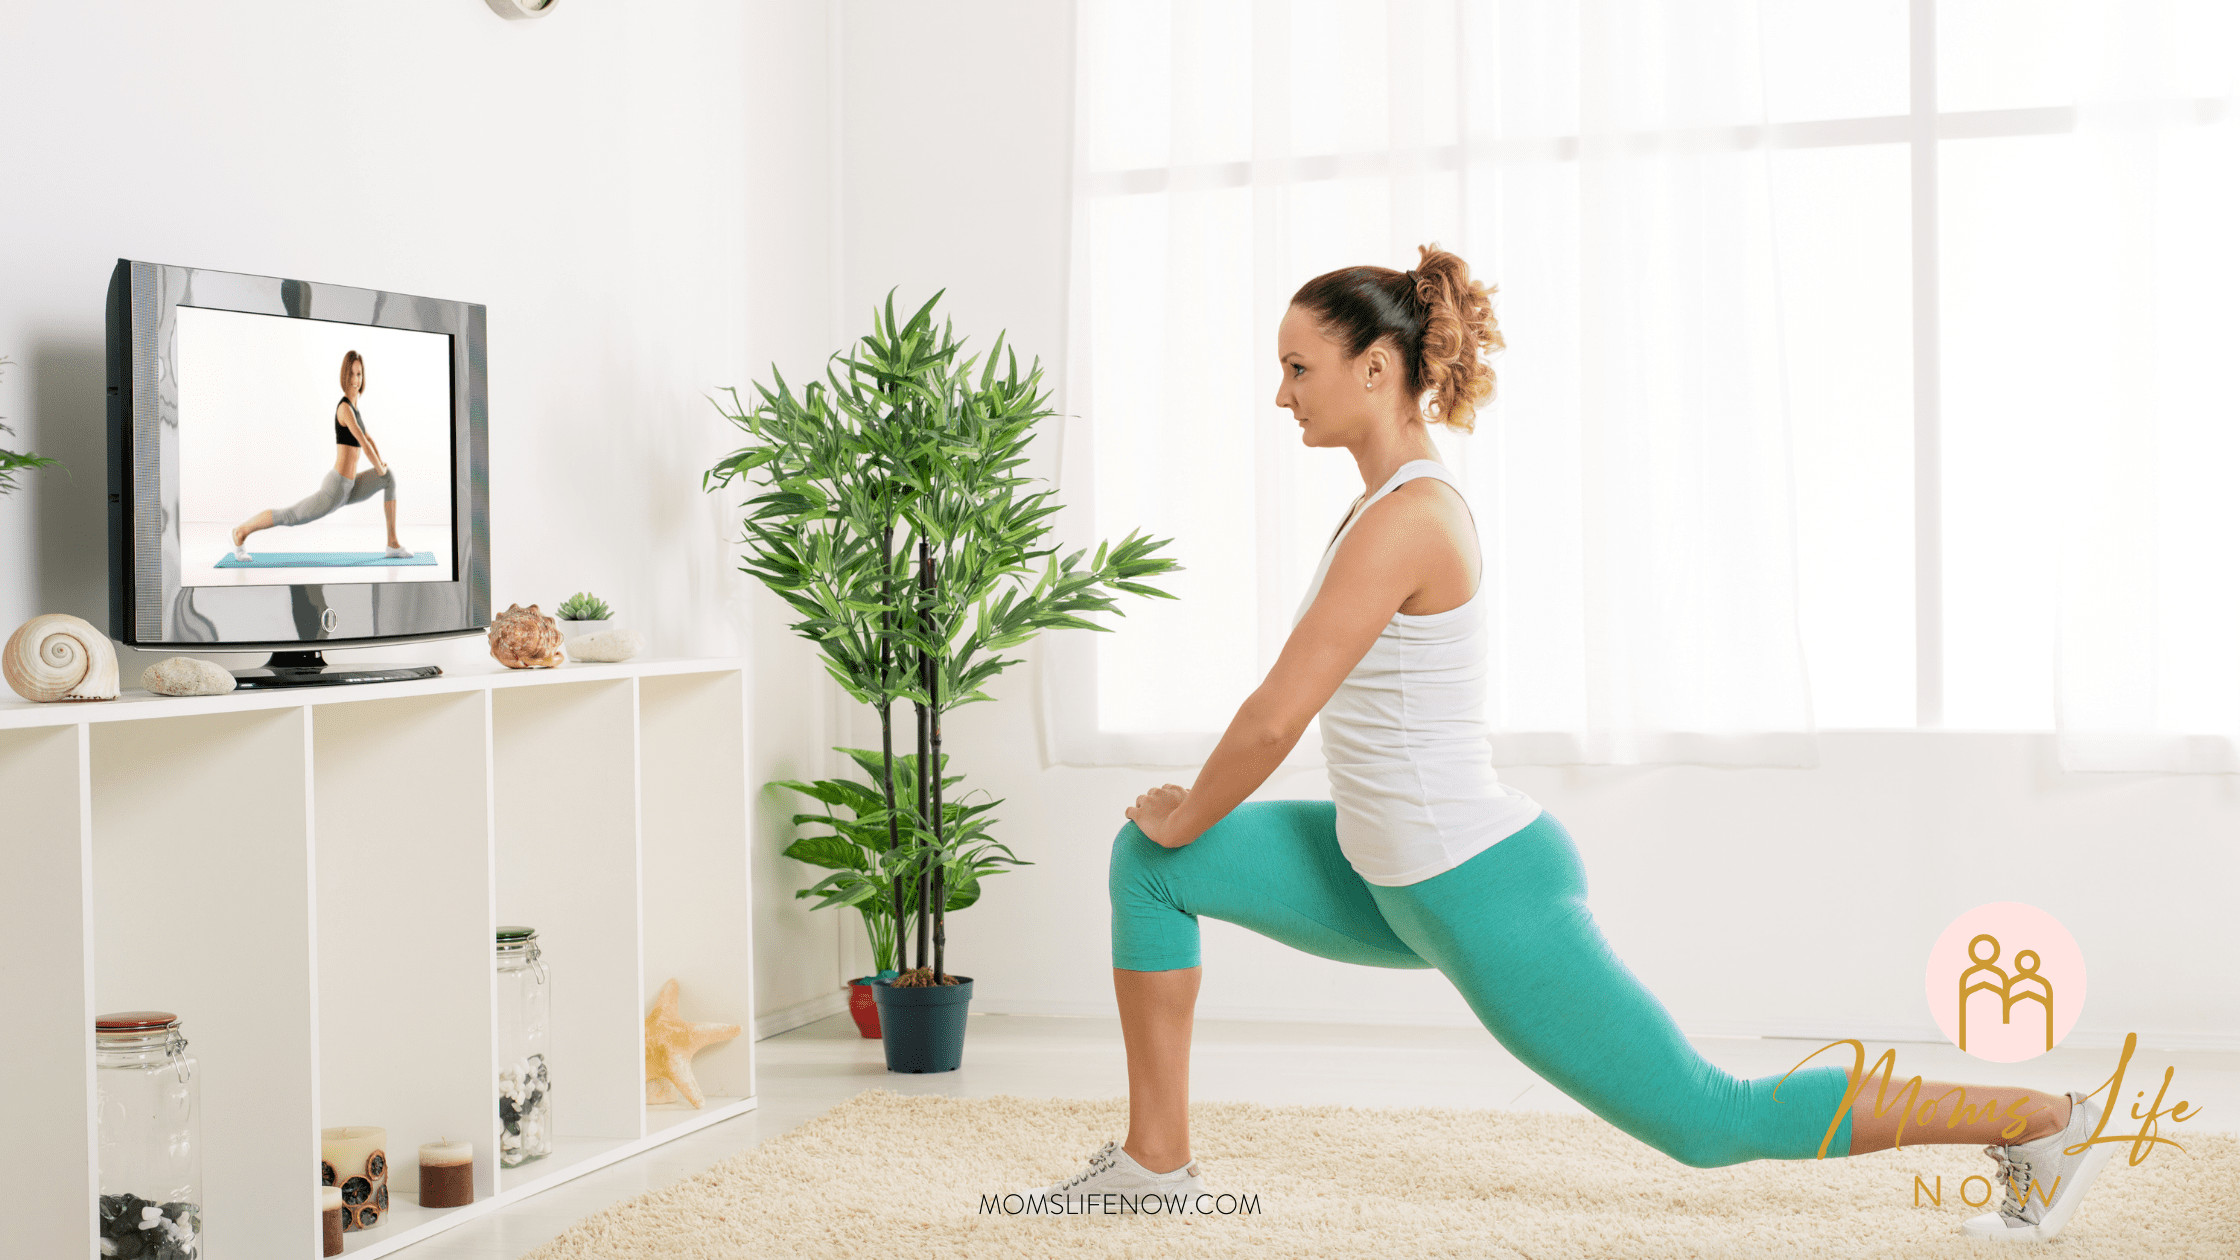 Treating Anxiety Disorders Through Exercise